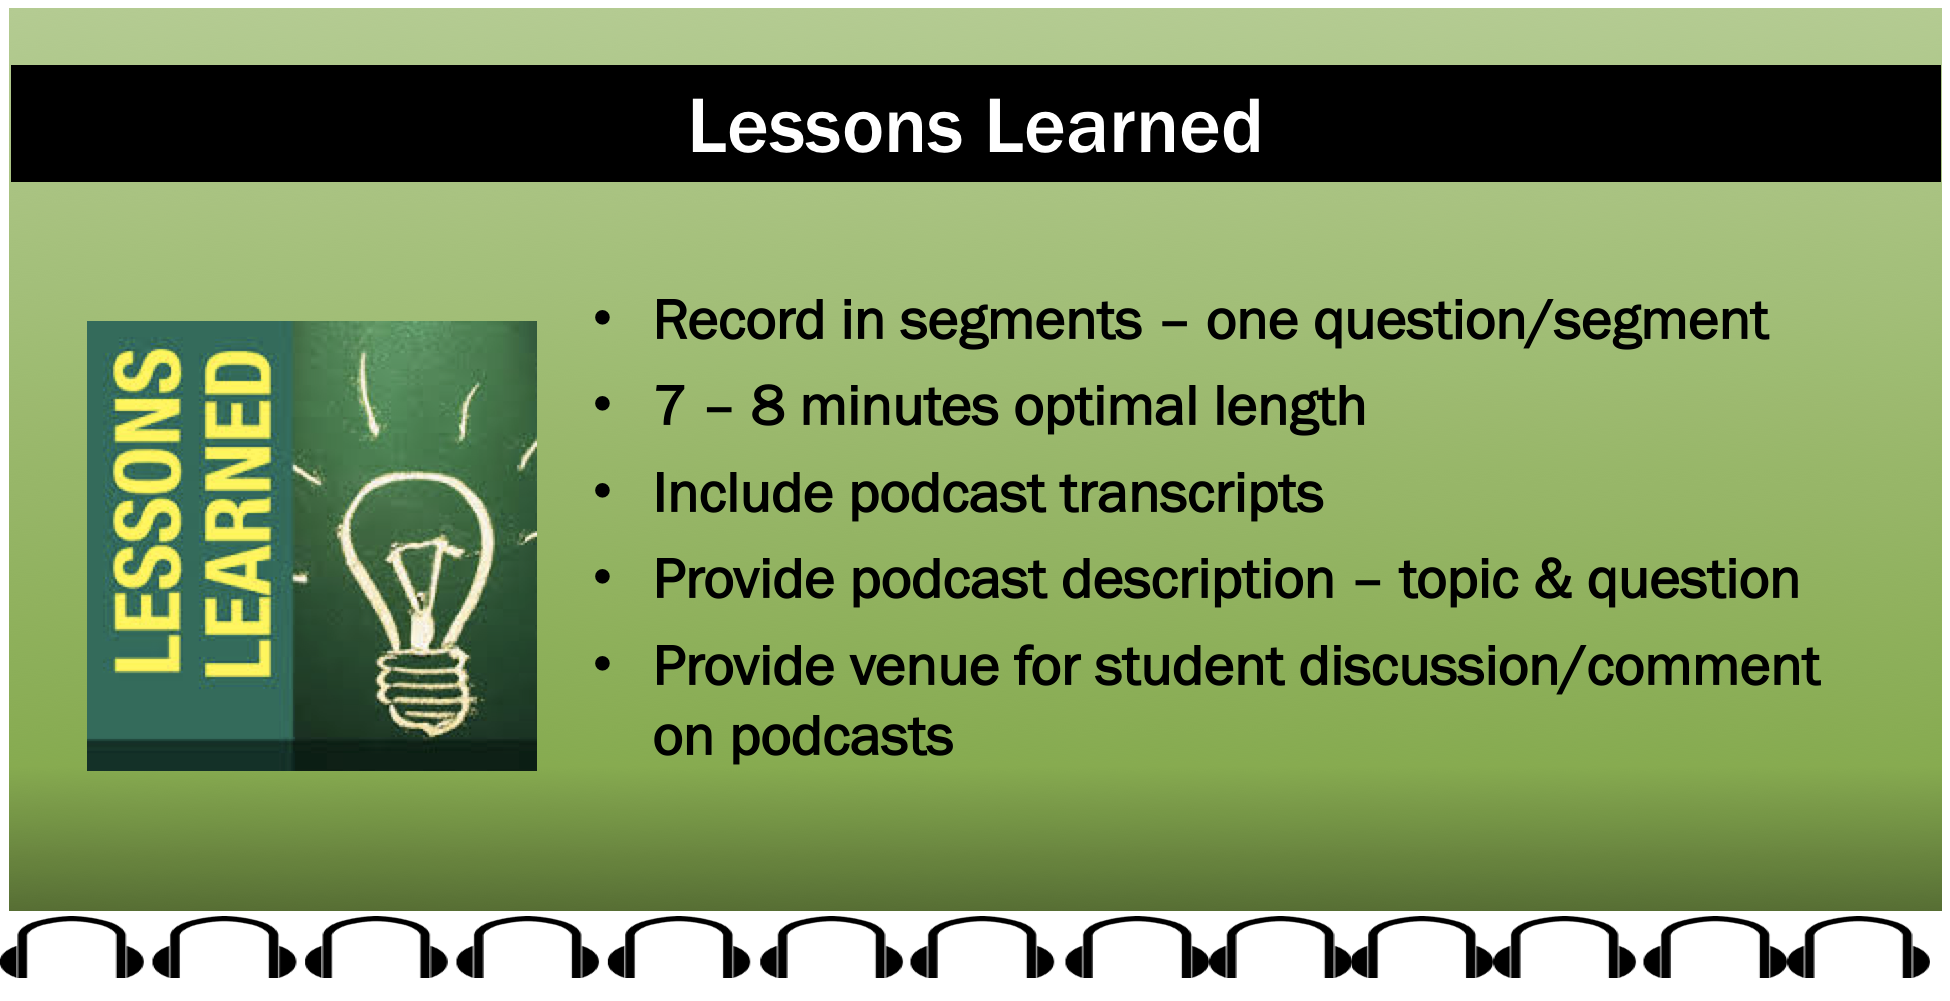 Lessons Learned: Record in segments - one question per segment; 7 to 8 minutes optimal length; include podcast transcripts; provide podcase description - topic & question; provide venue for student discussion and comment on the podcasts